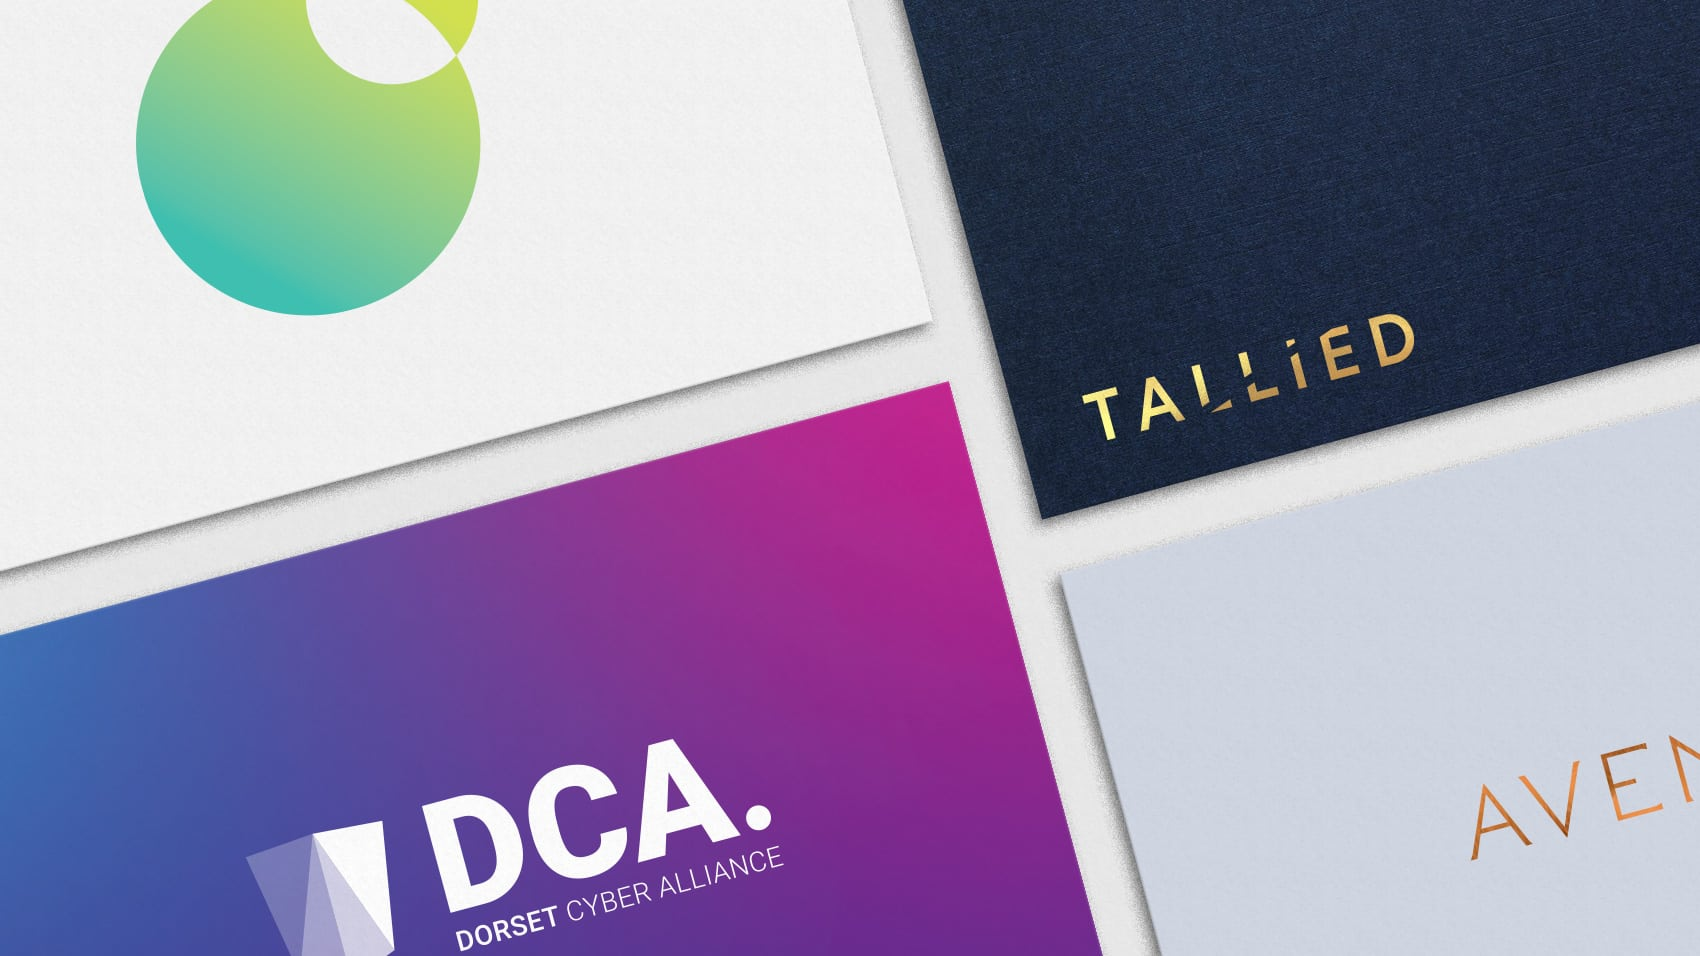 Brand Identity Design - A brand is far more than a logo, it's the perception of your company in every form – a living identity.As a design and strategy studio, Keeping seeks to gain a clear understanding of our client's purpose, values and target audience to deliver a brand that drives valuable engagement.